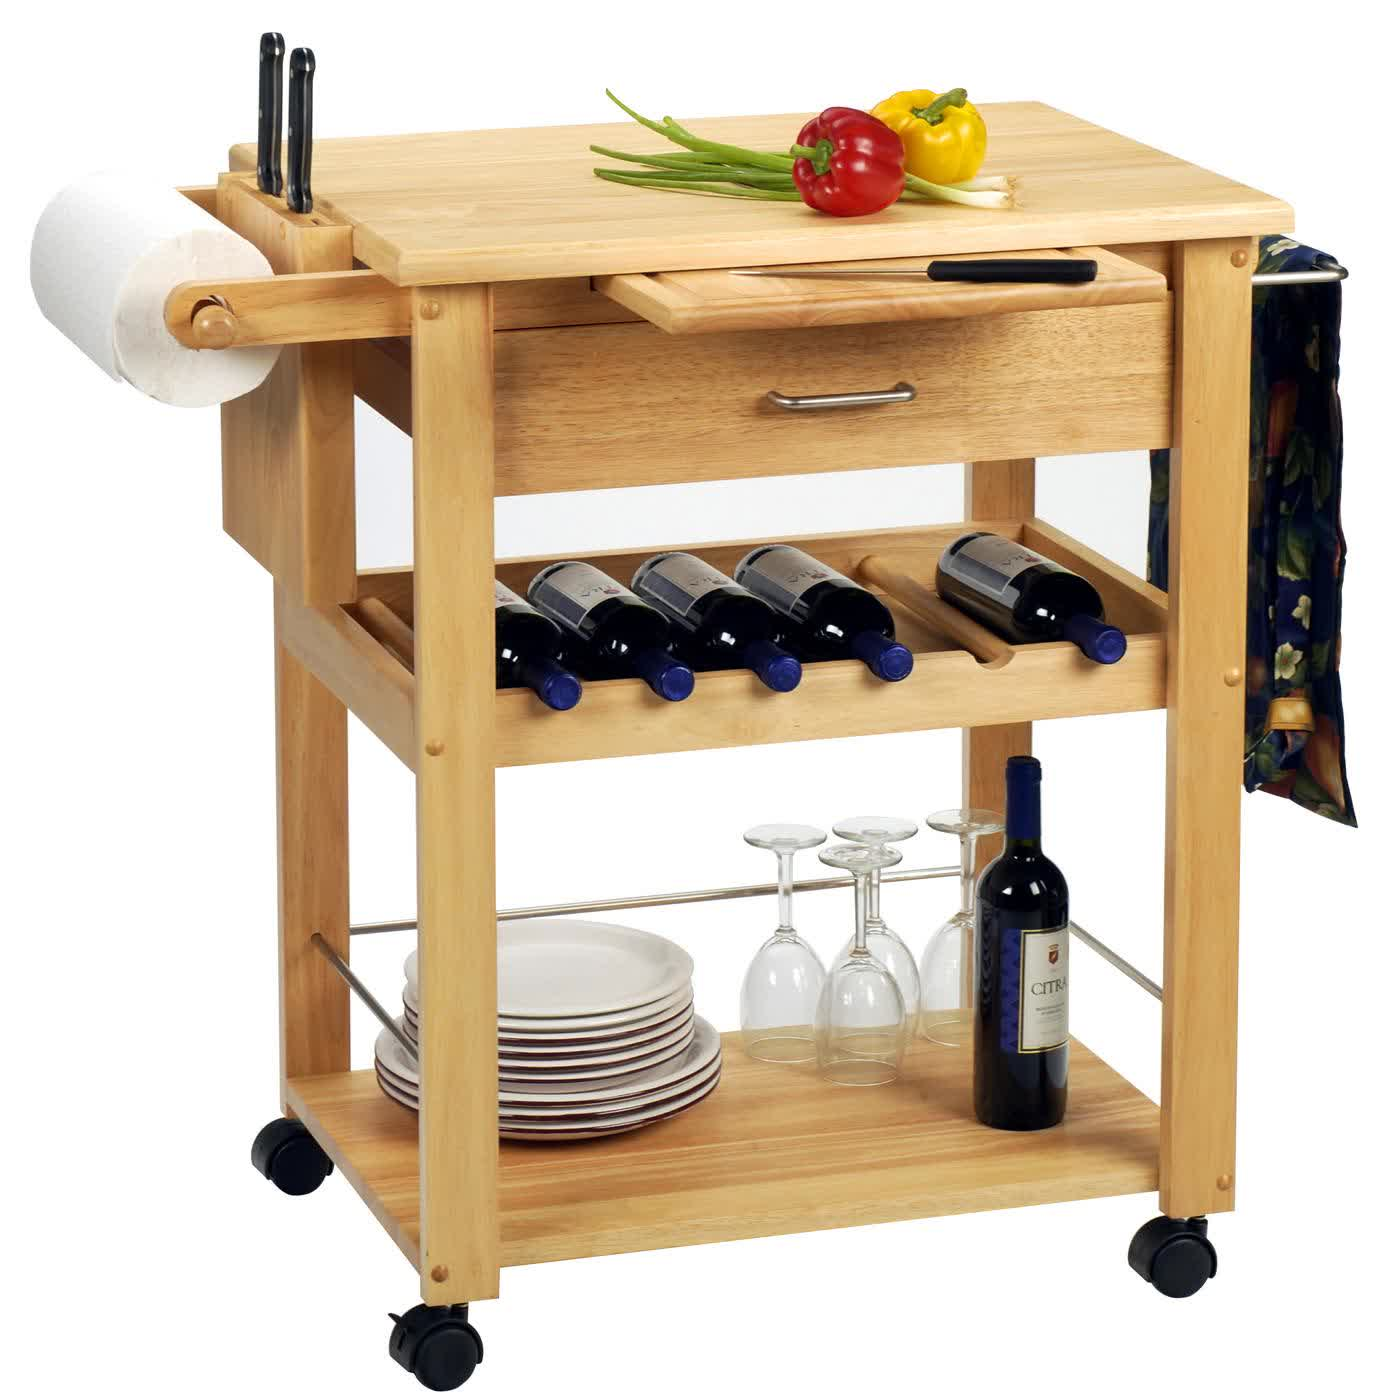 Get Practical and Movable Carts with Butcher Blocks on Wheels : HomesFeed